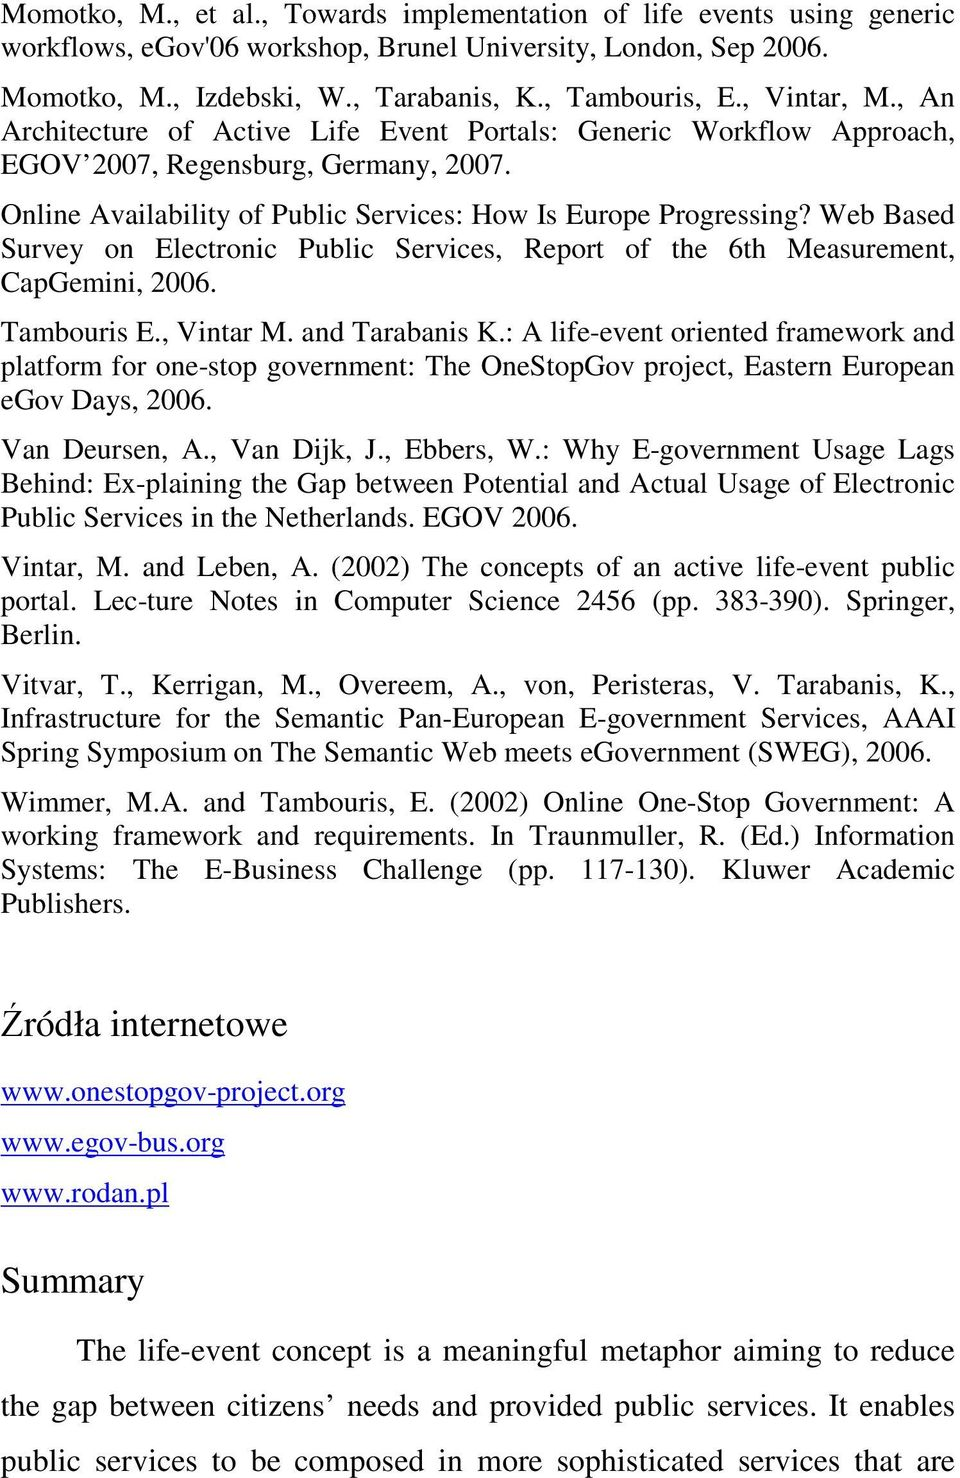 Web Based Survey on Electronic Public Services, Report of the 6th Measurement, CapGemini, 2006. Tambouris E., Vintar M. and Tarabanis K.